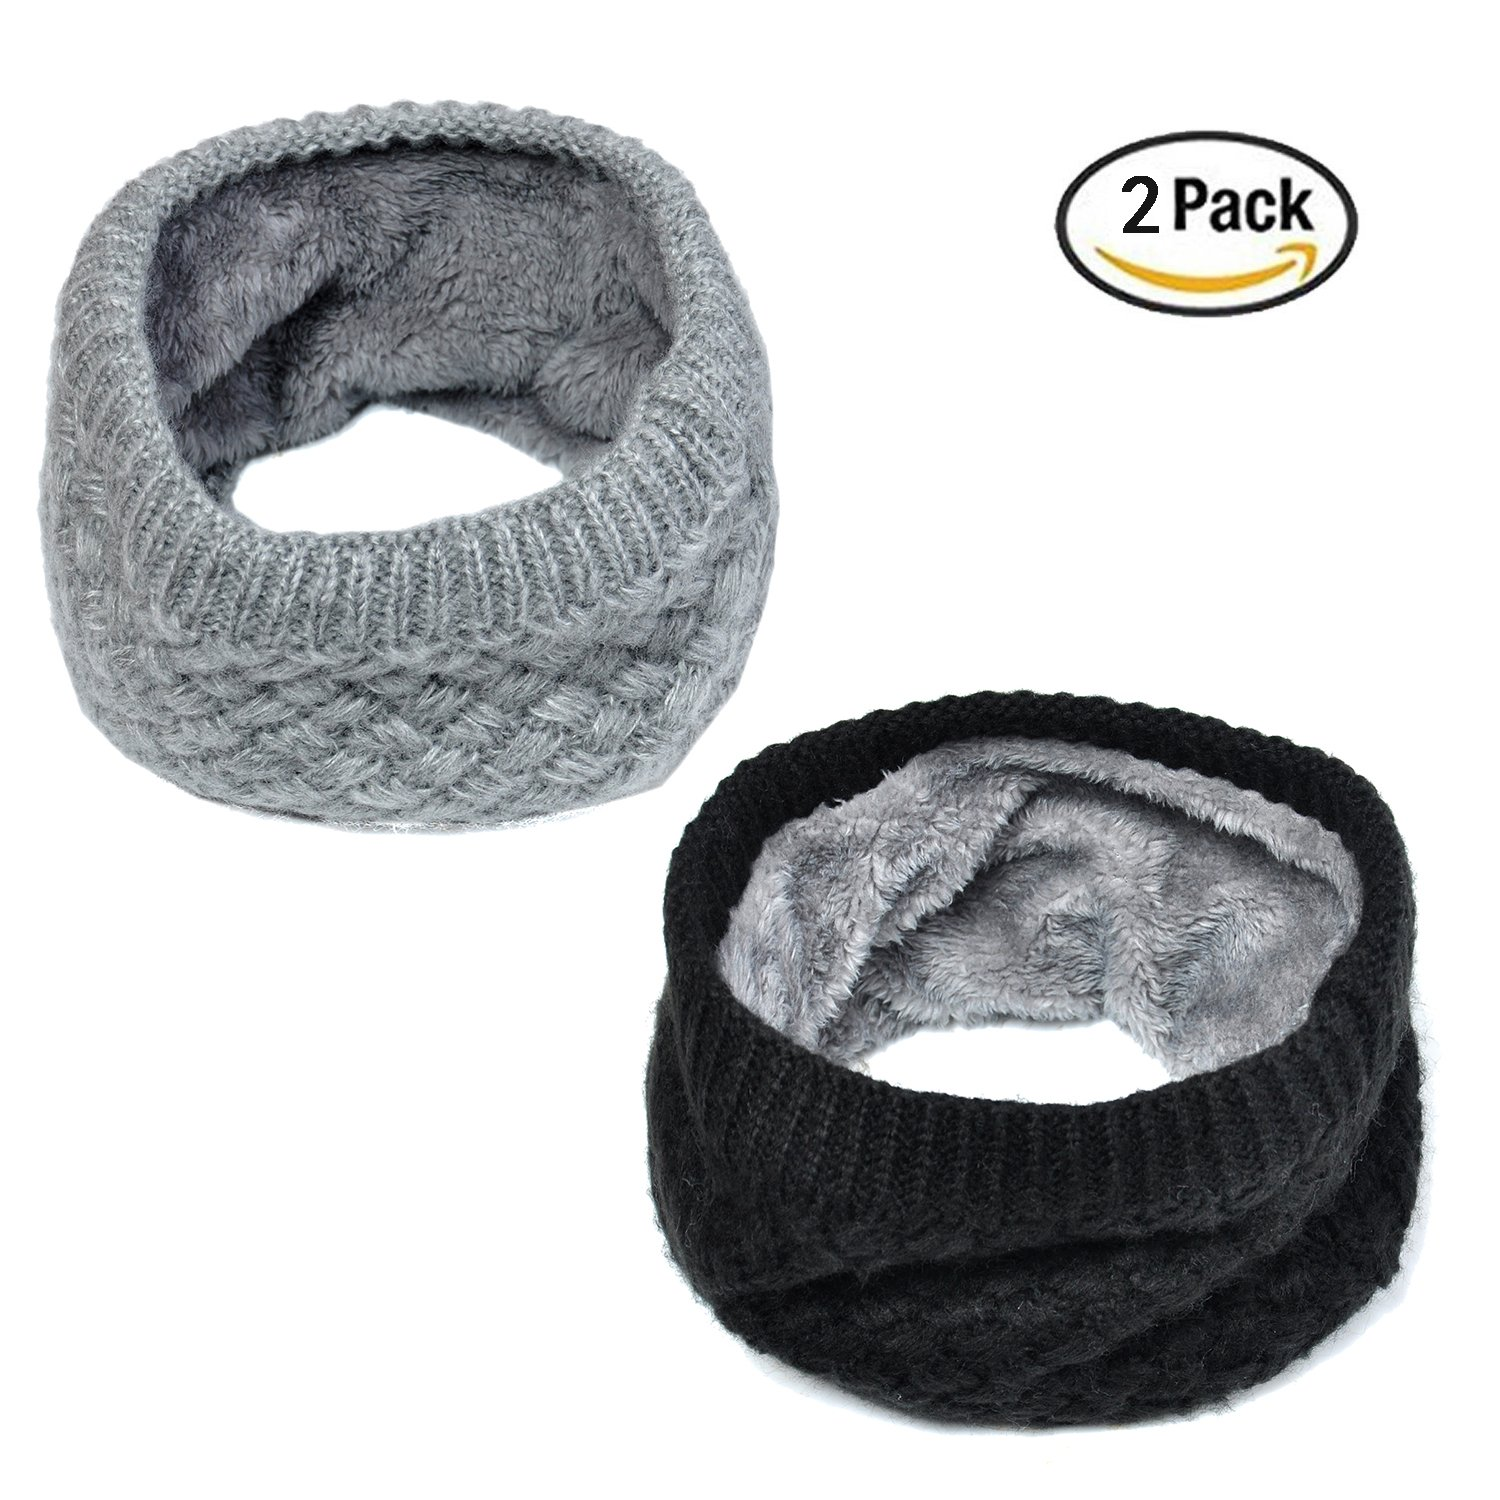 Lo Shokim Harsh Winter Double-Layer Soft Fleece Lined Thick Knit Neck Warmer Circle Scarf Windproof , 2 Pack Black & Grey